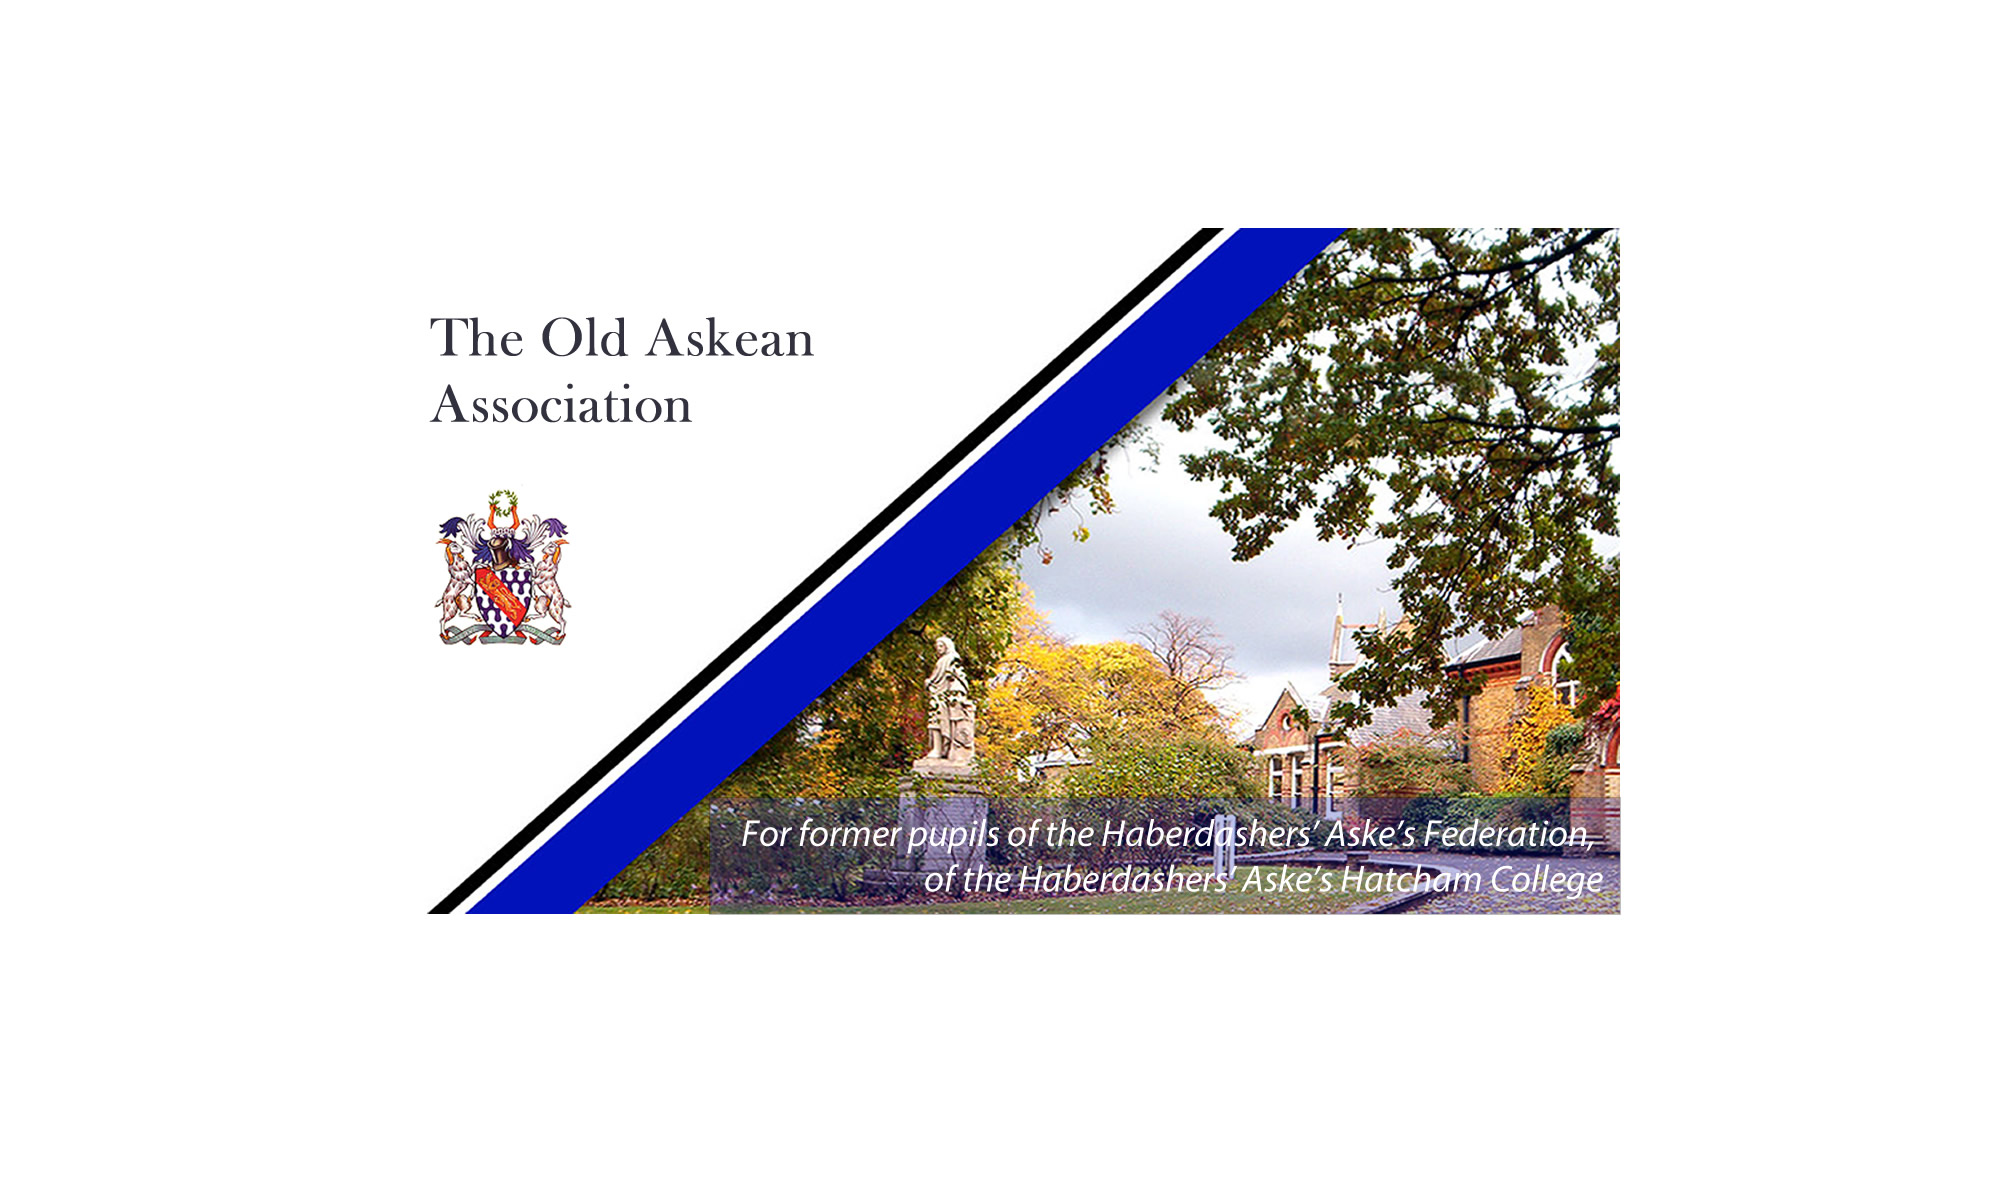 The Old Askean Association